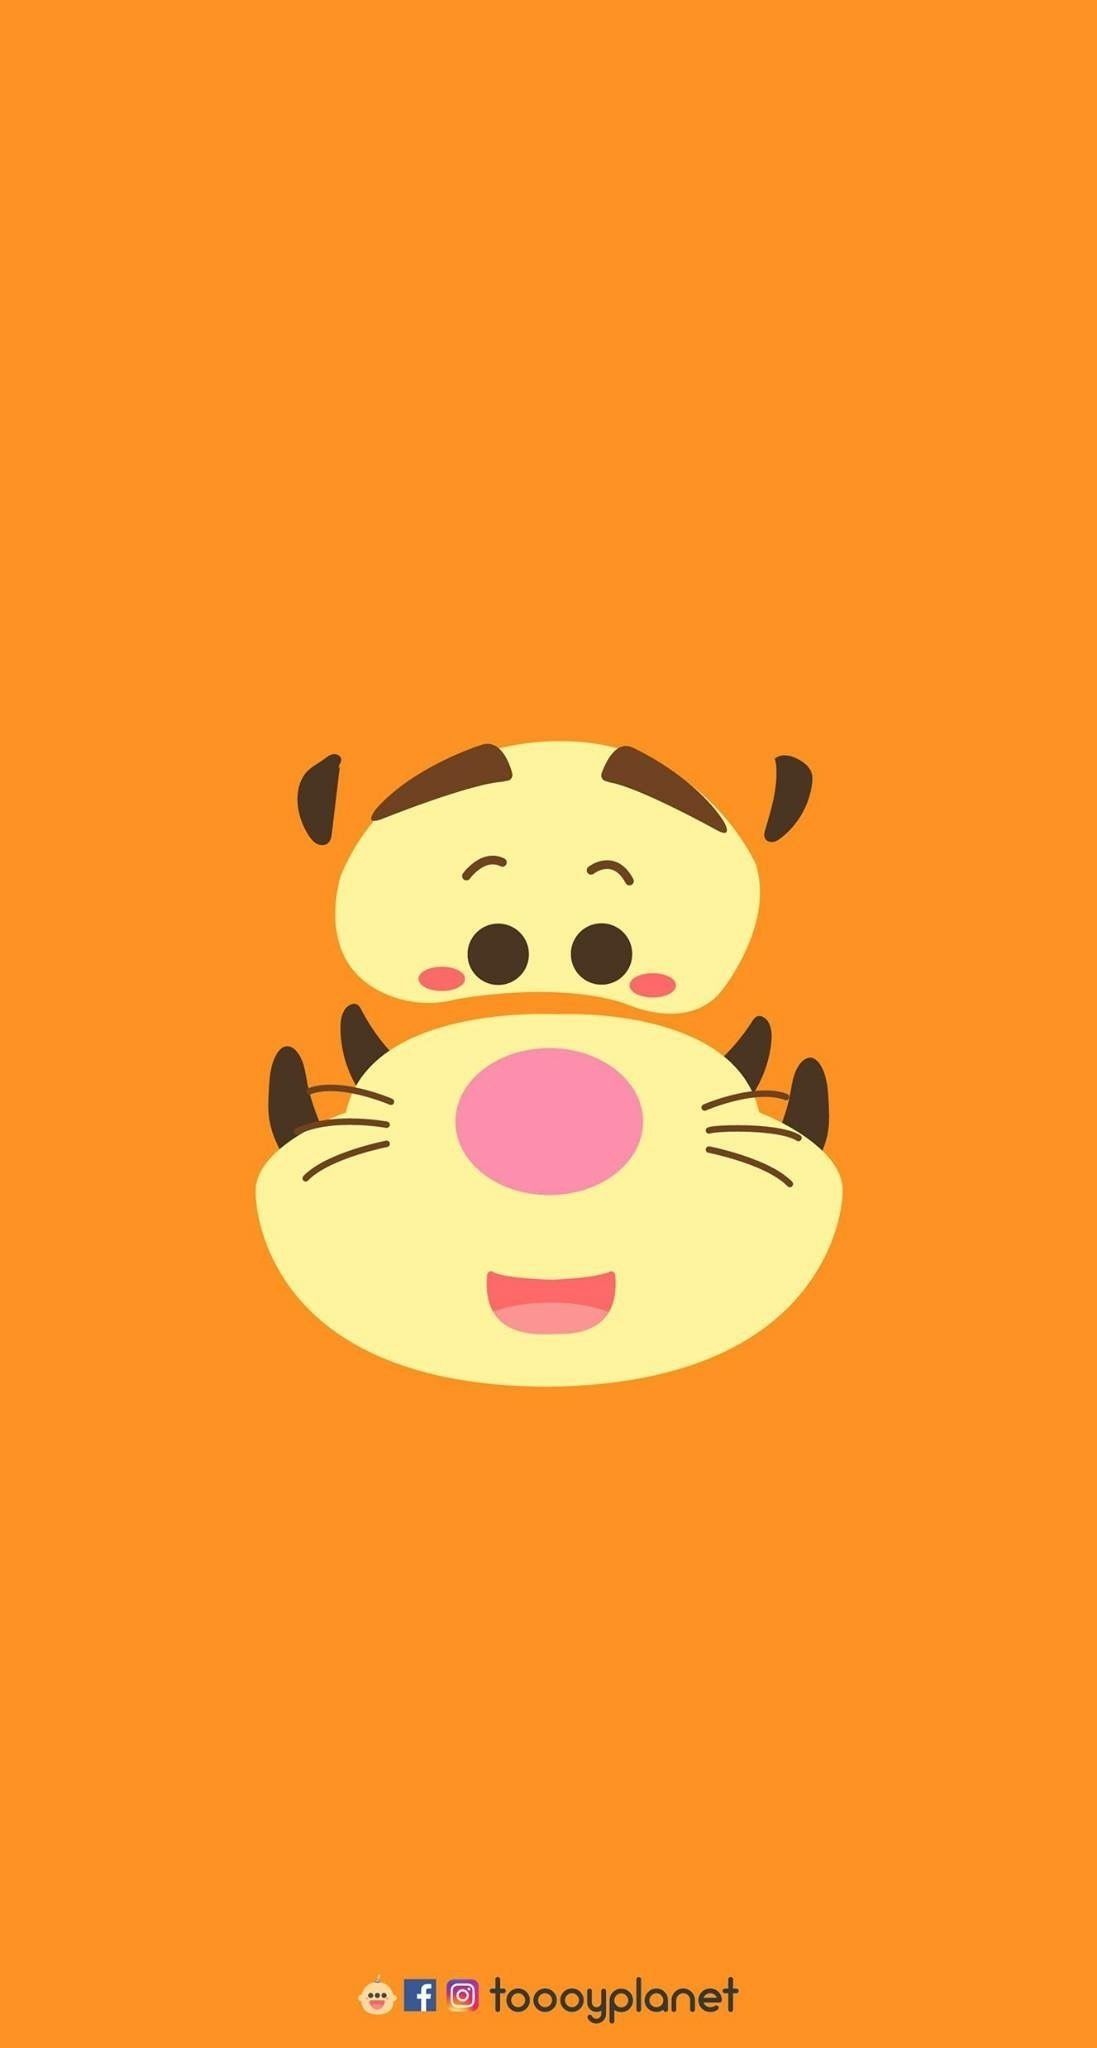 63 Tigger Wallpapers On Wallpaperplay Within The Most Incredible Winnie The Pooh Tigger Wallp Tigger Winnie The Pooh Winnie The Pooh Pictures Cartoon Wallpaper